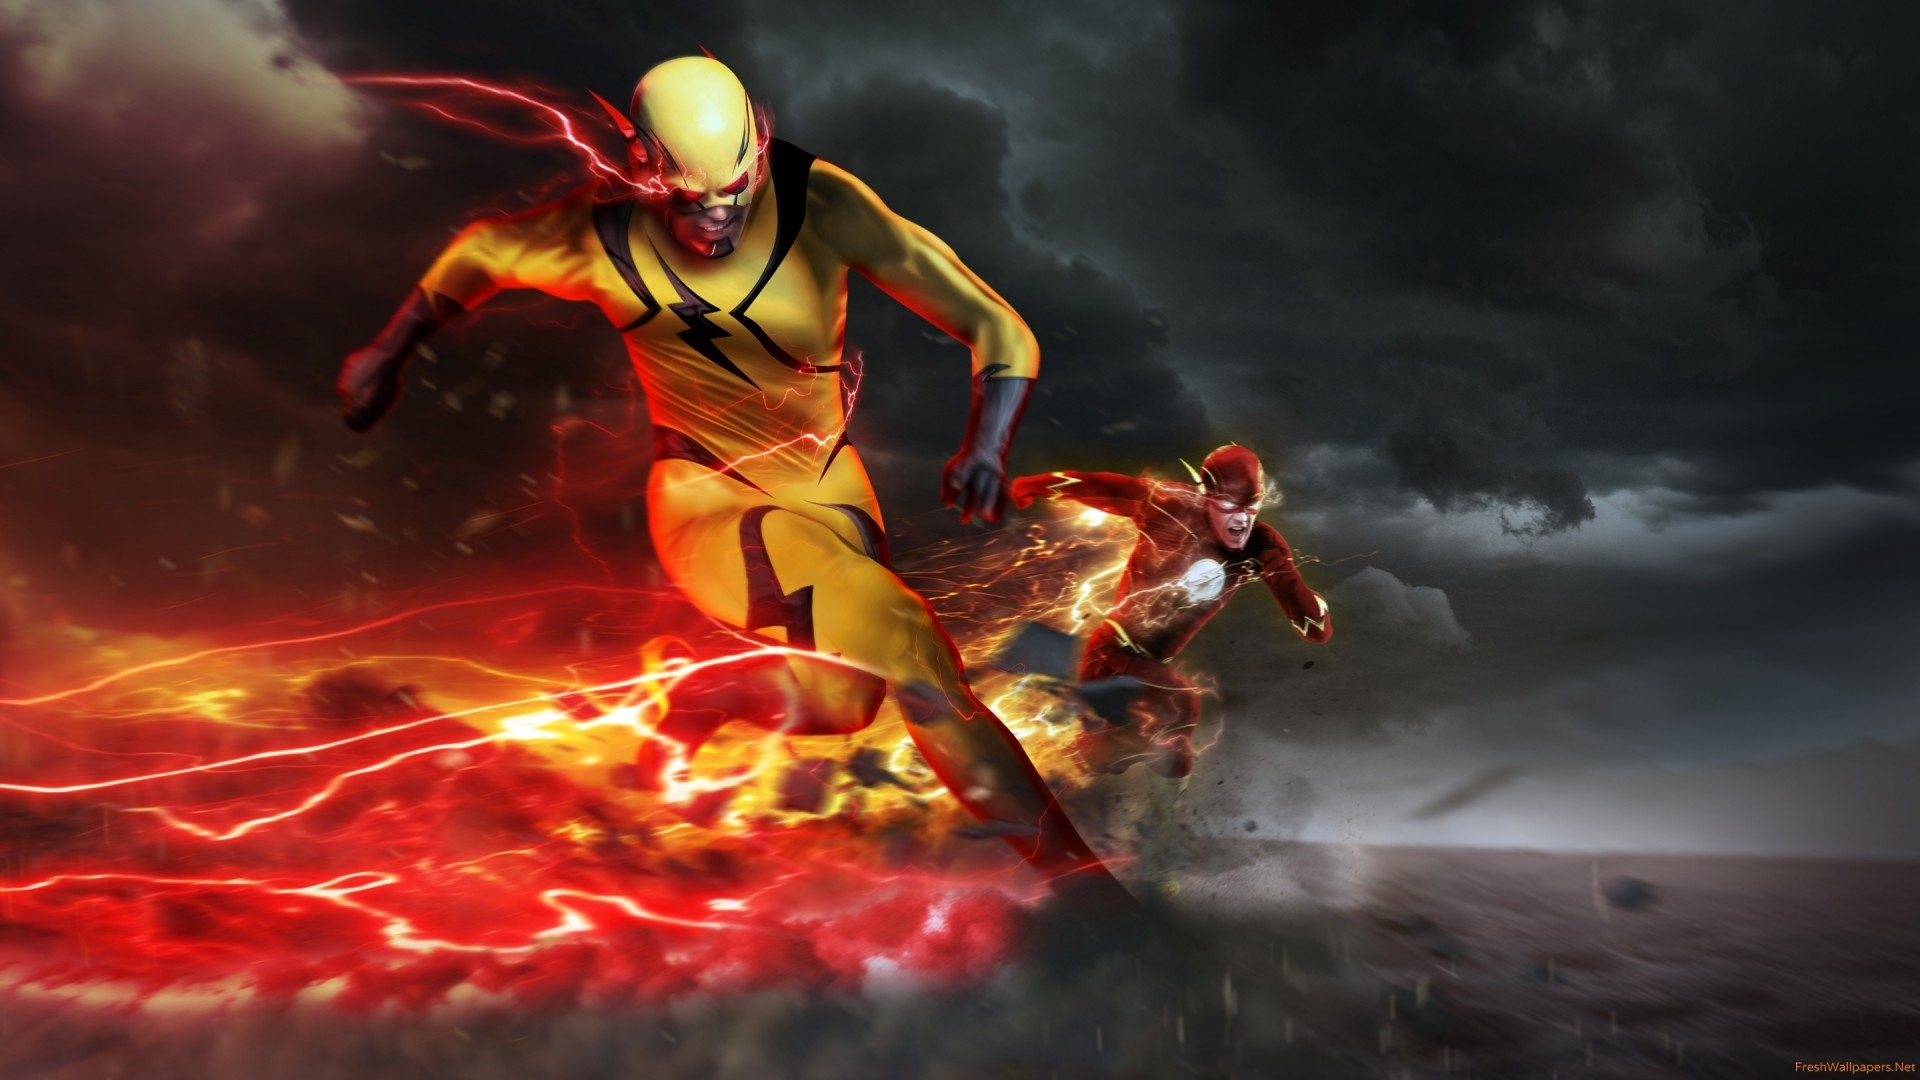 eobard thawne as professor zoom in the flash wallpapers